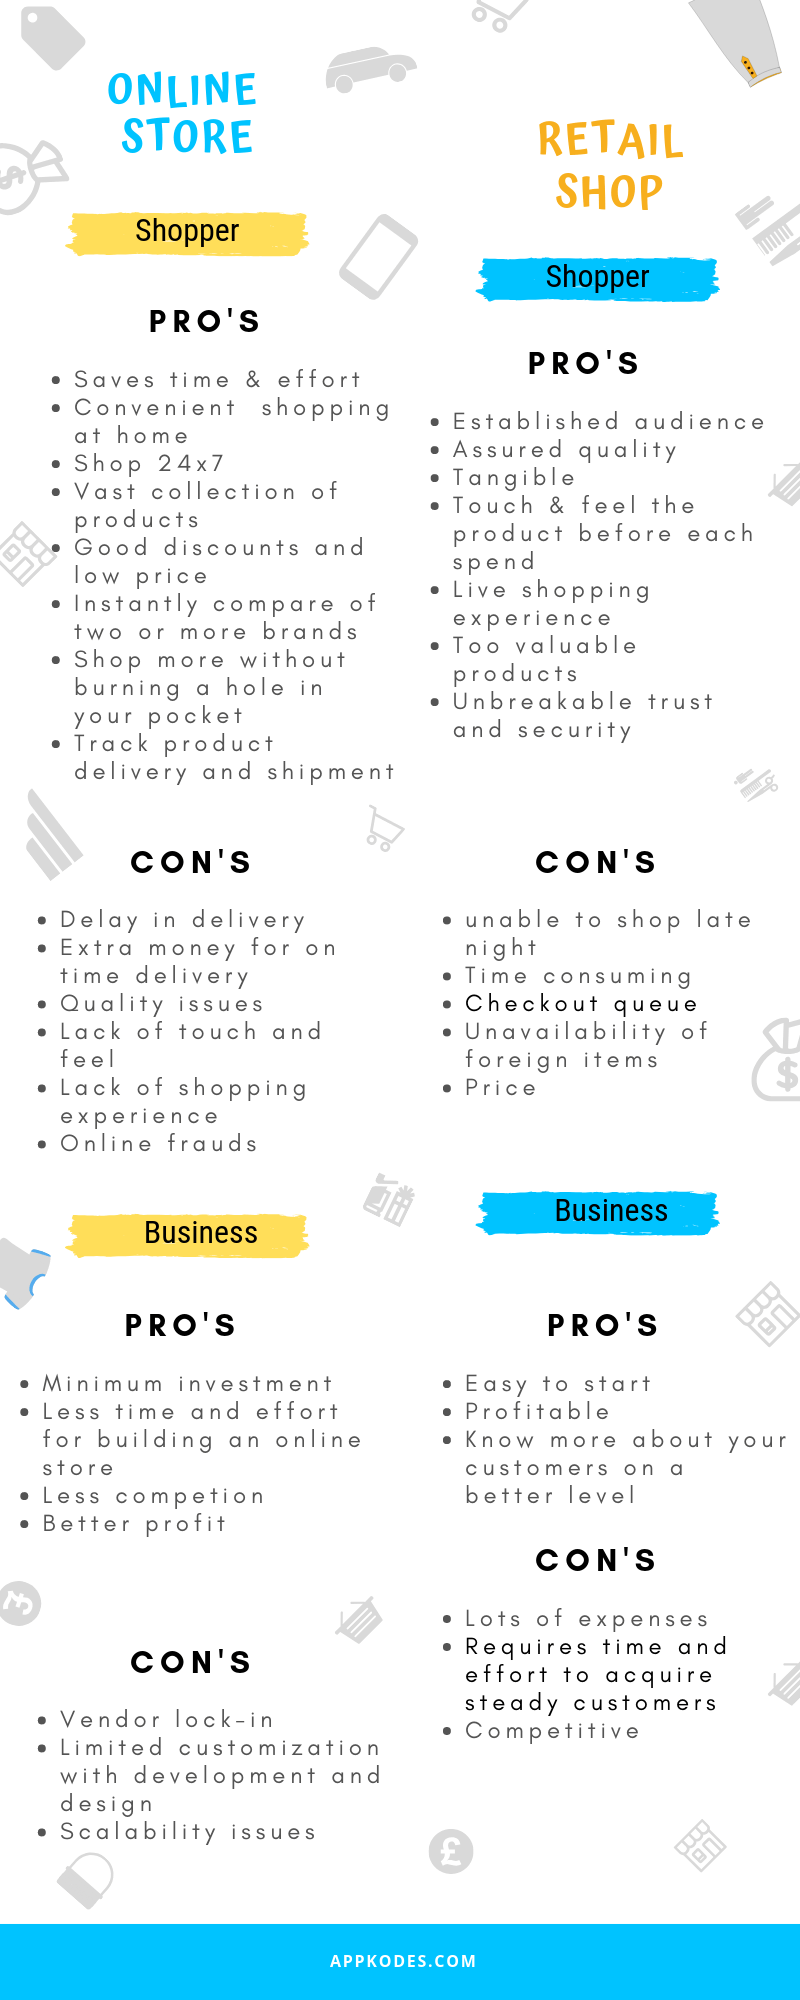 Advantage and Disadvantages of online store as well as retail store [infographic]